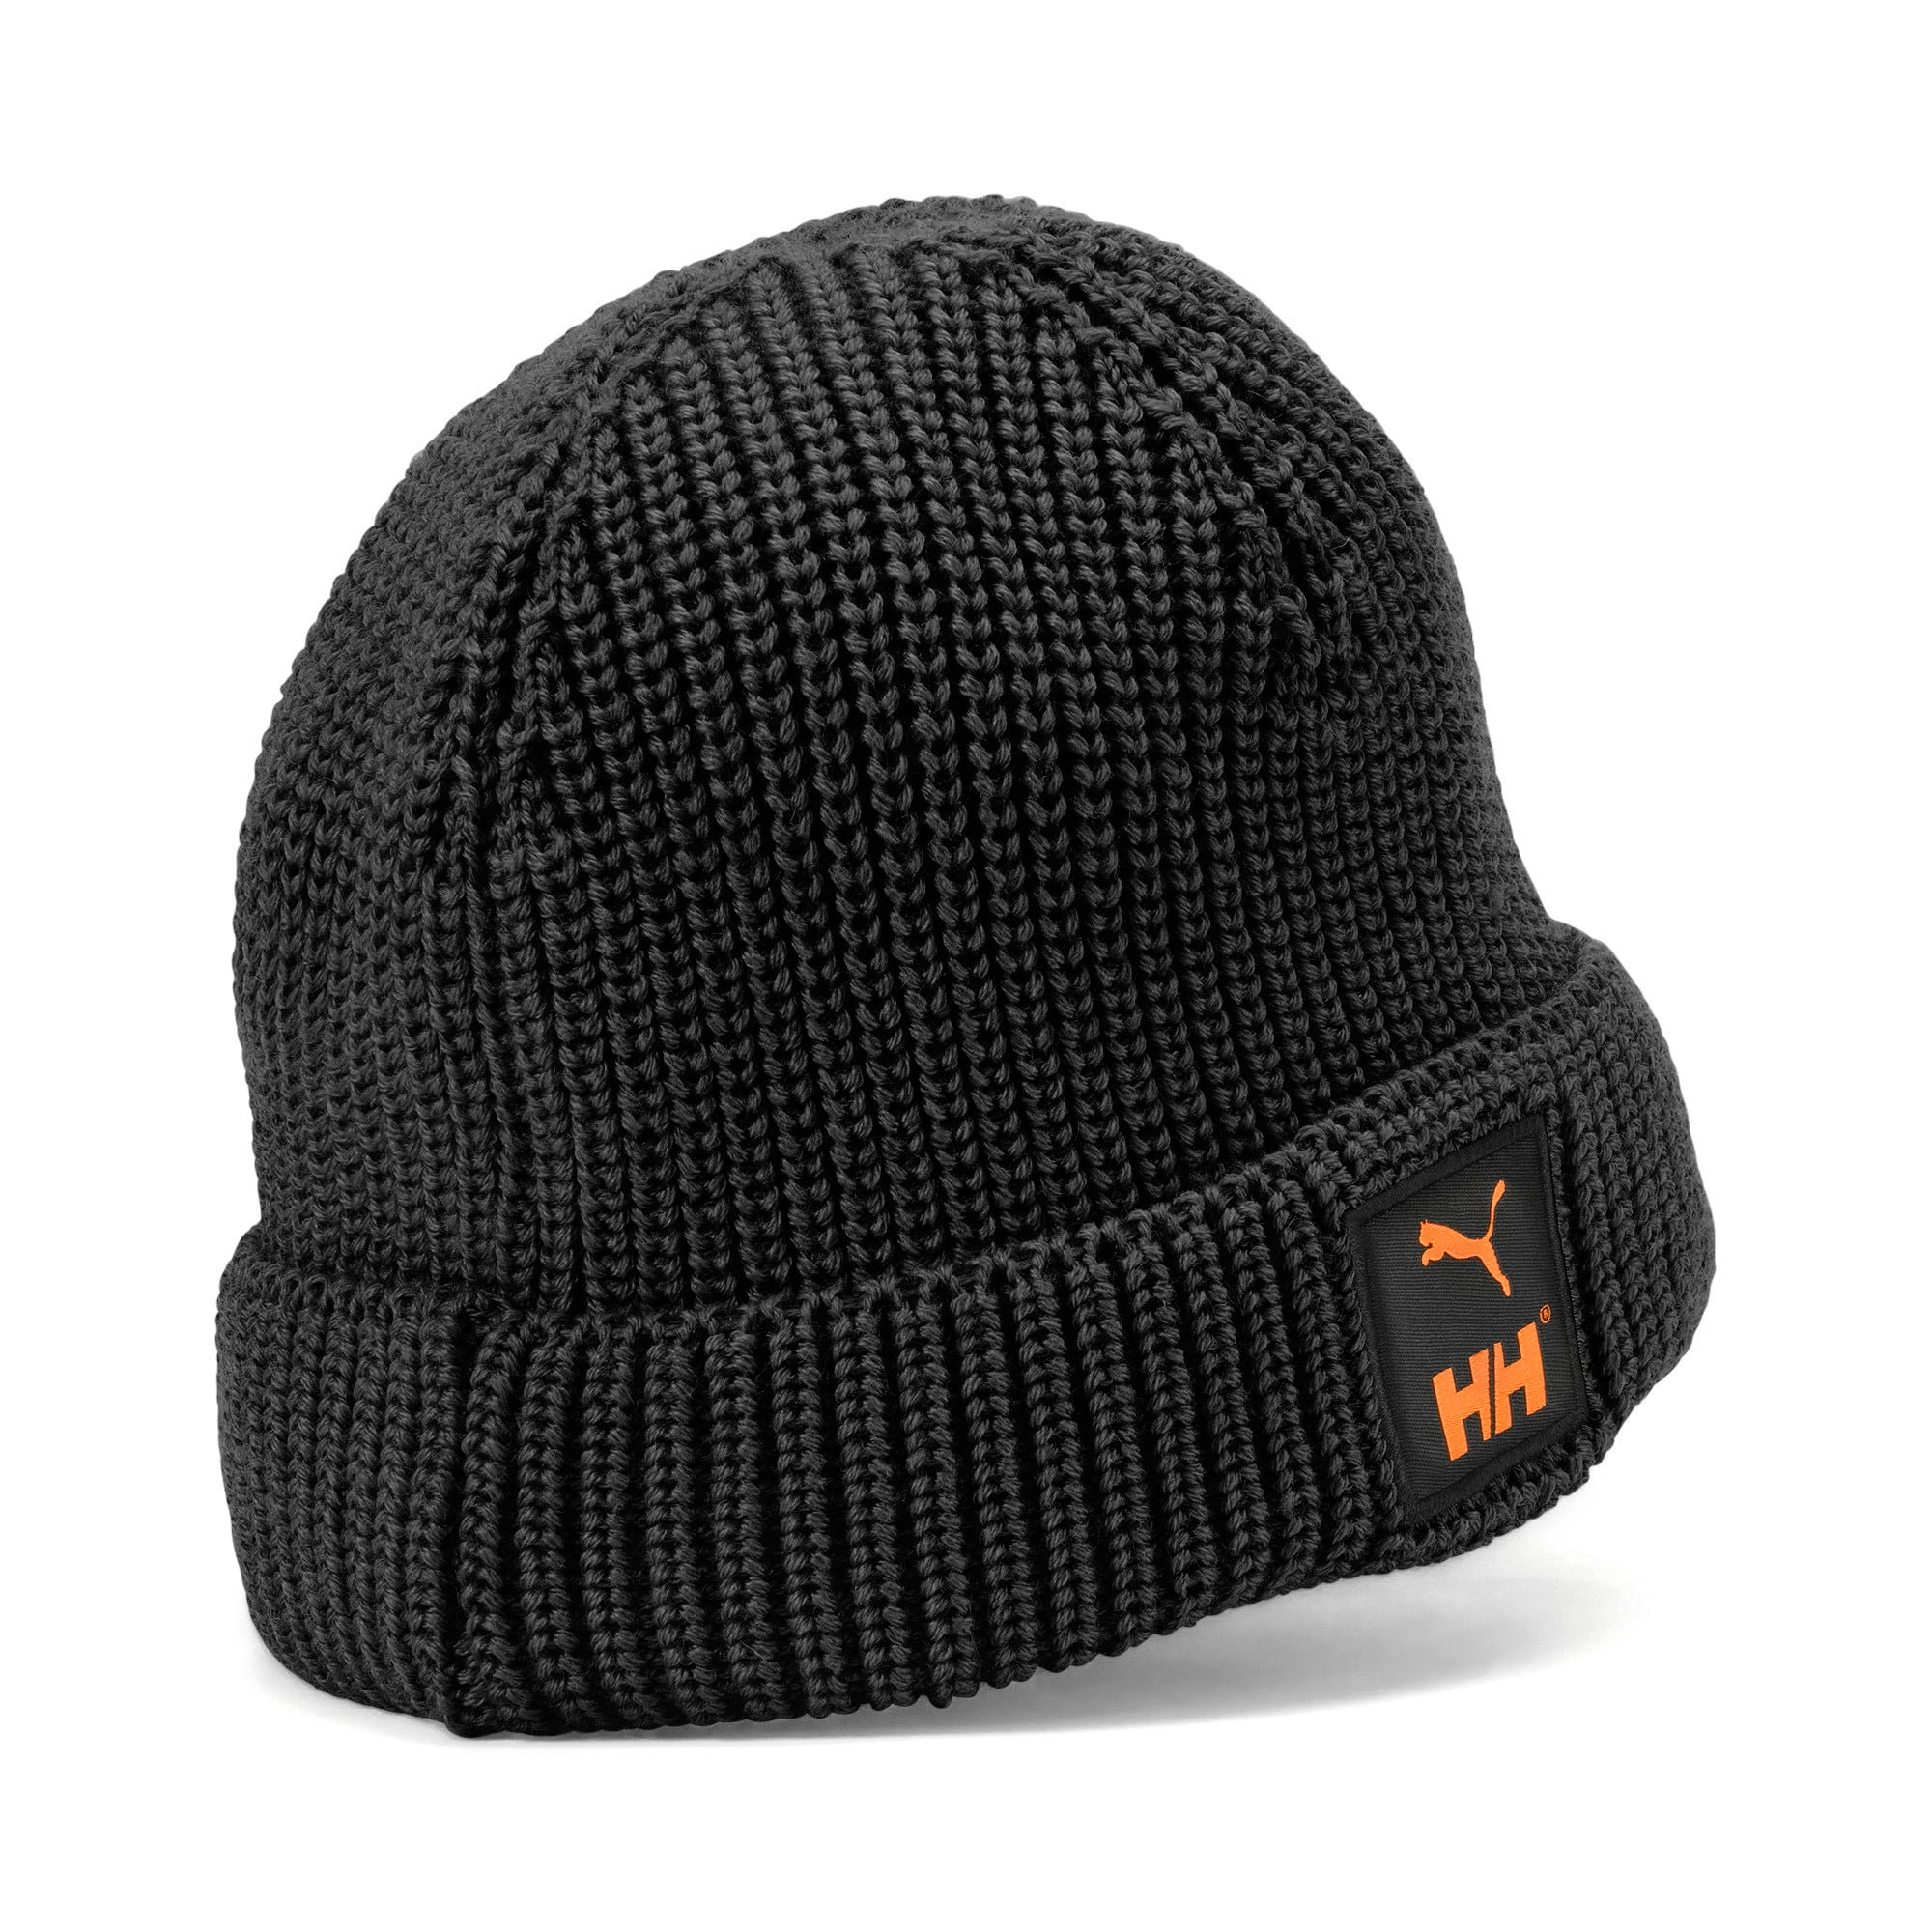 Thumbnail 2 of PUMA x HELLY HANSEN Beanie, Puma Black, medium